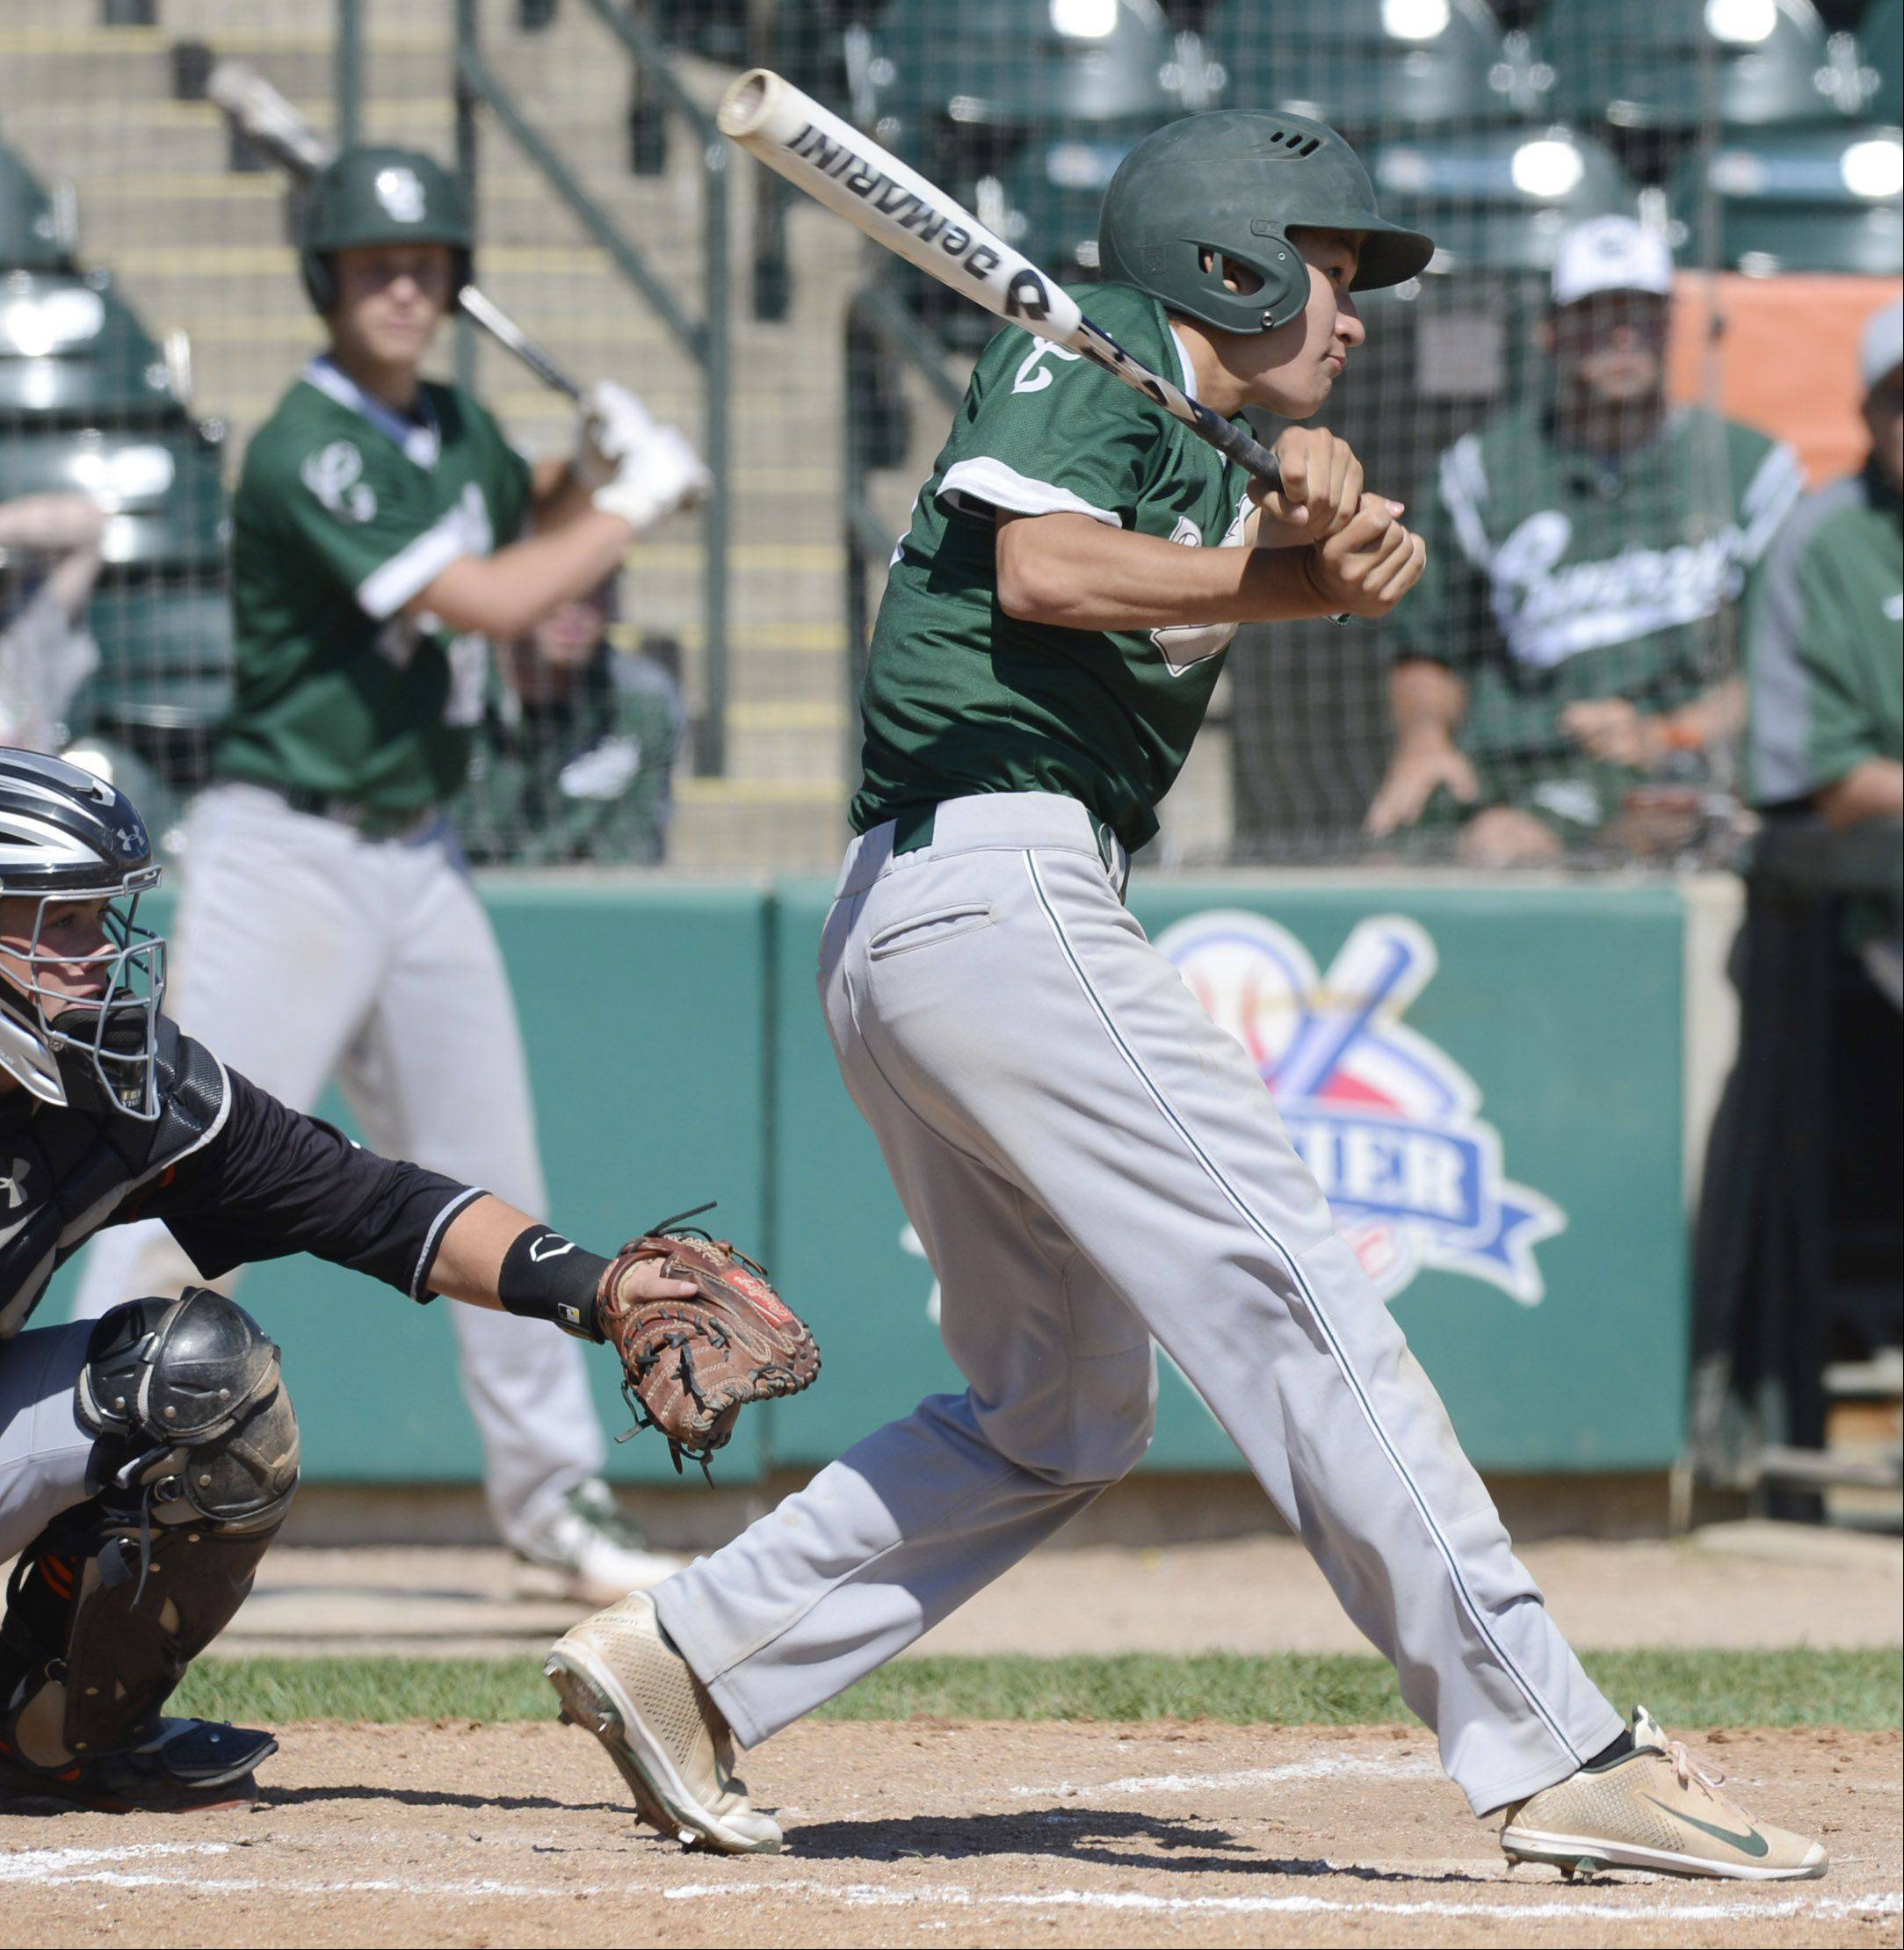 Grayslake Cebtral's Pat Burba drives home the game's only run with a single during the Class 3A state baseball third-place game against Mt. Vernon at Silver Cross Field in Joliet Saturday.